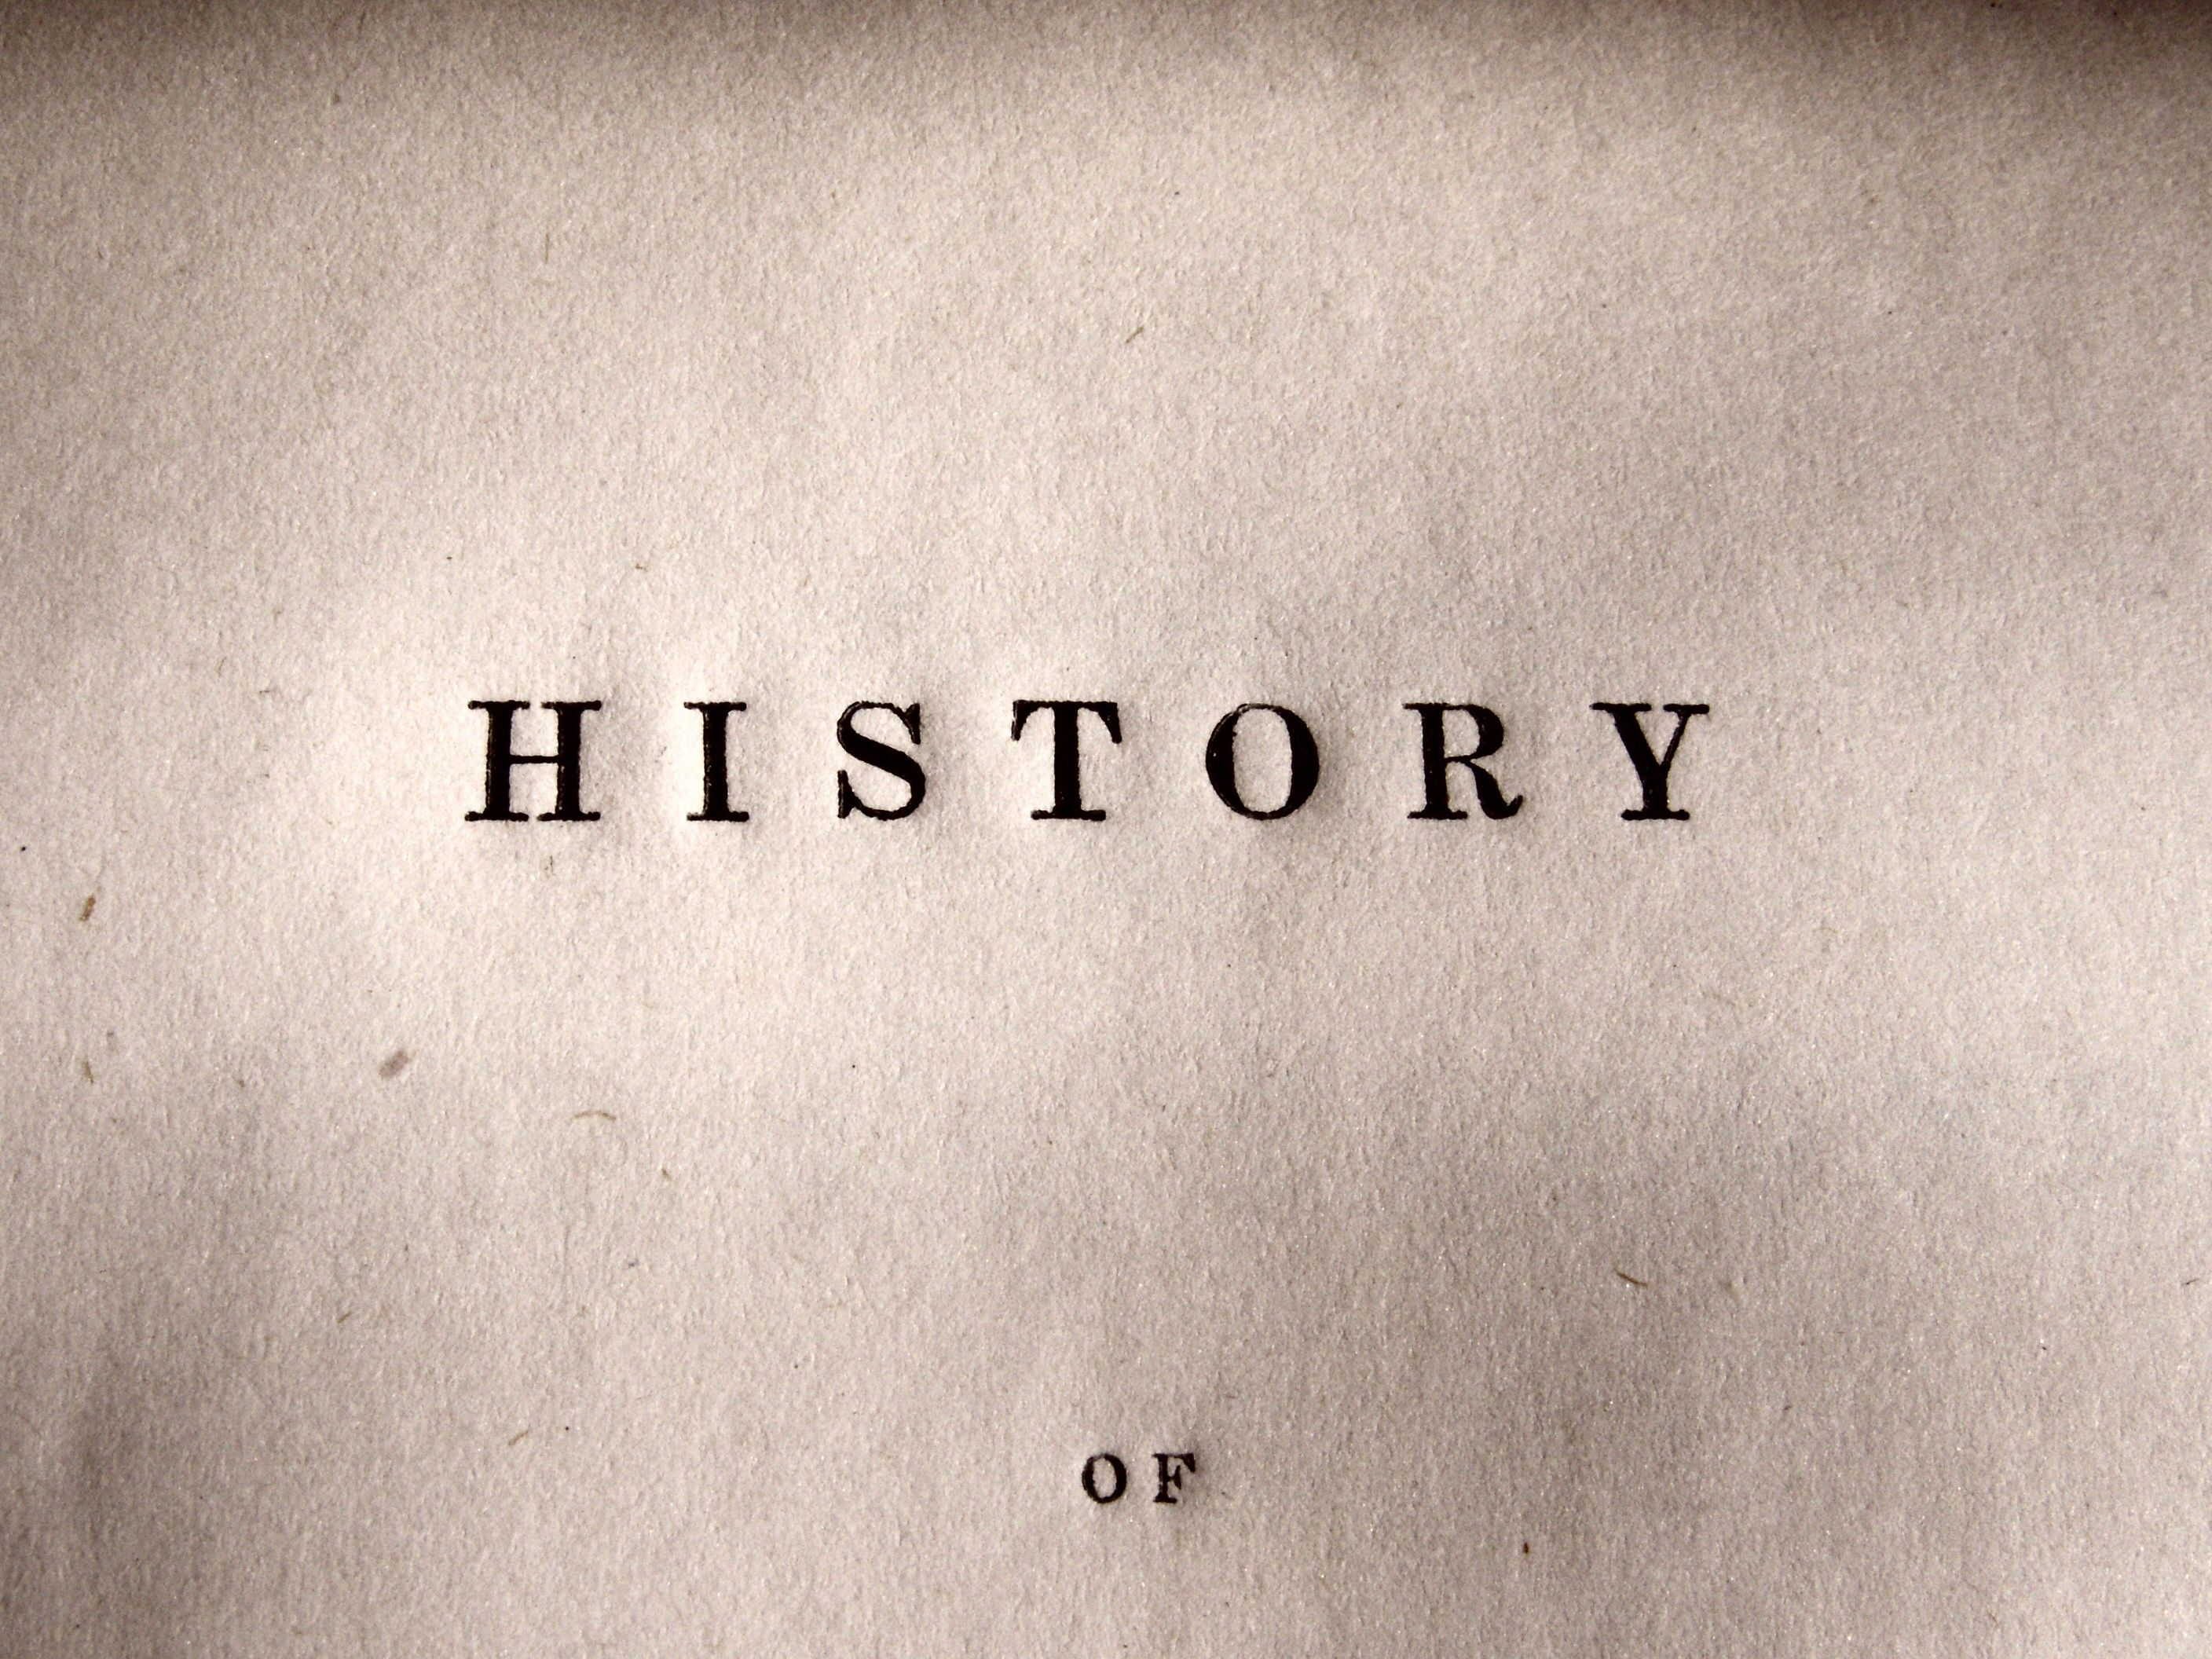 The Origins of Psychology: History Through the Years